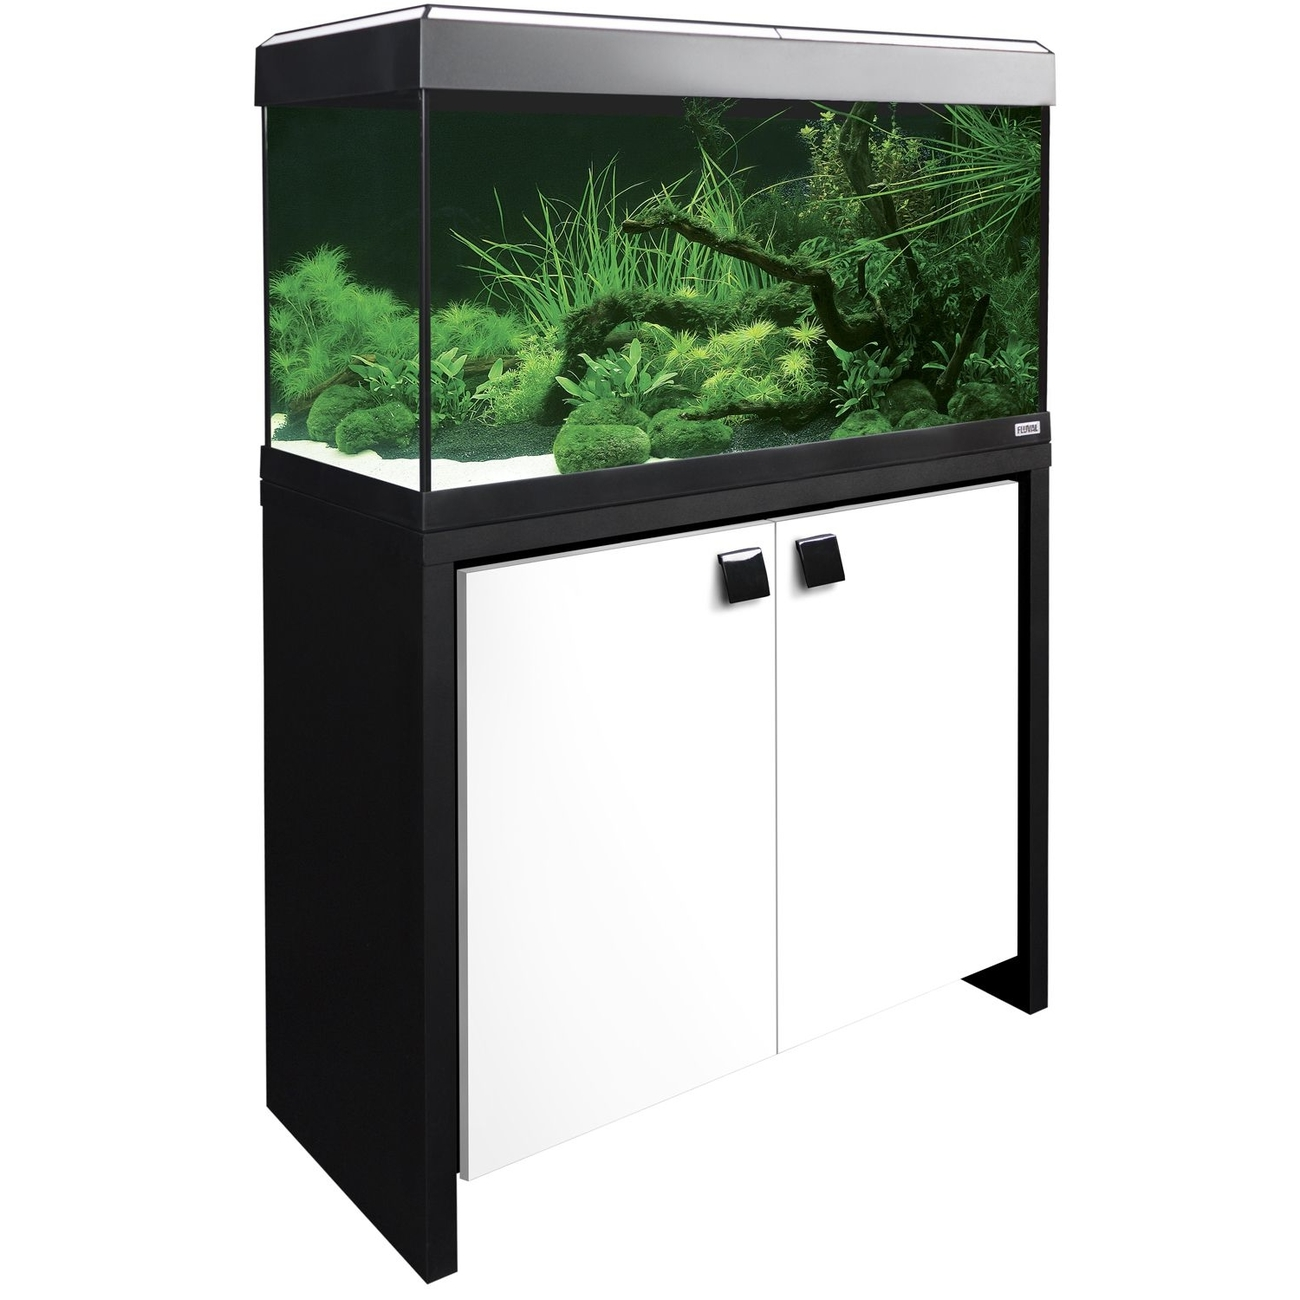 fluval aquarium schrank kombi roma von fluval g nstig bestellen. Black Bedroom Furniture Sets. Home Design Ideas